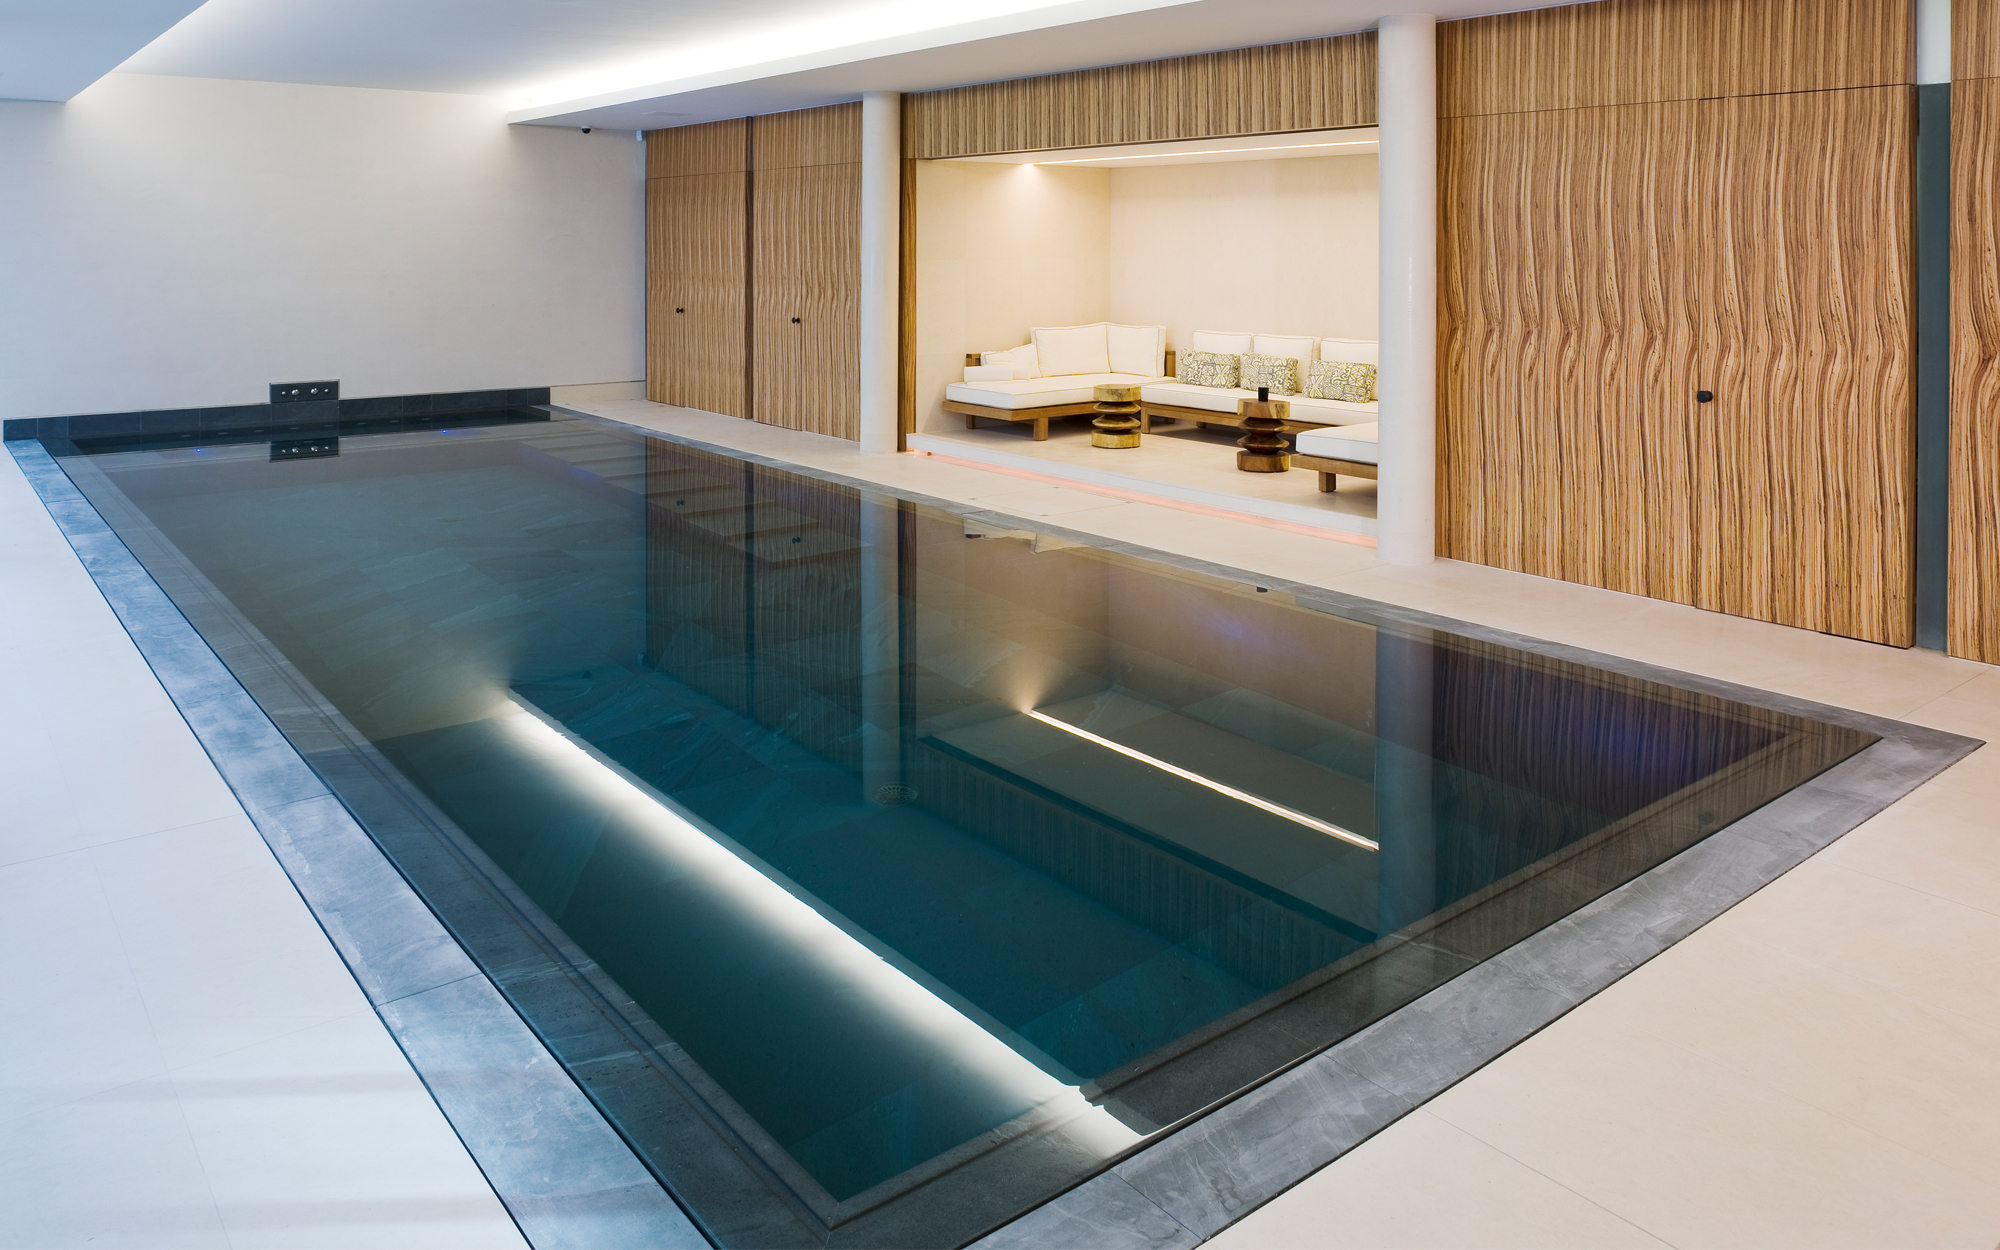 David Collins indoor pool design david collins Top 10 David Collins Design Ideas 11 24